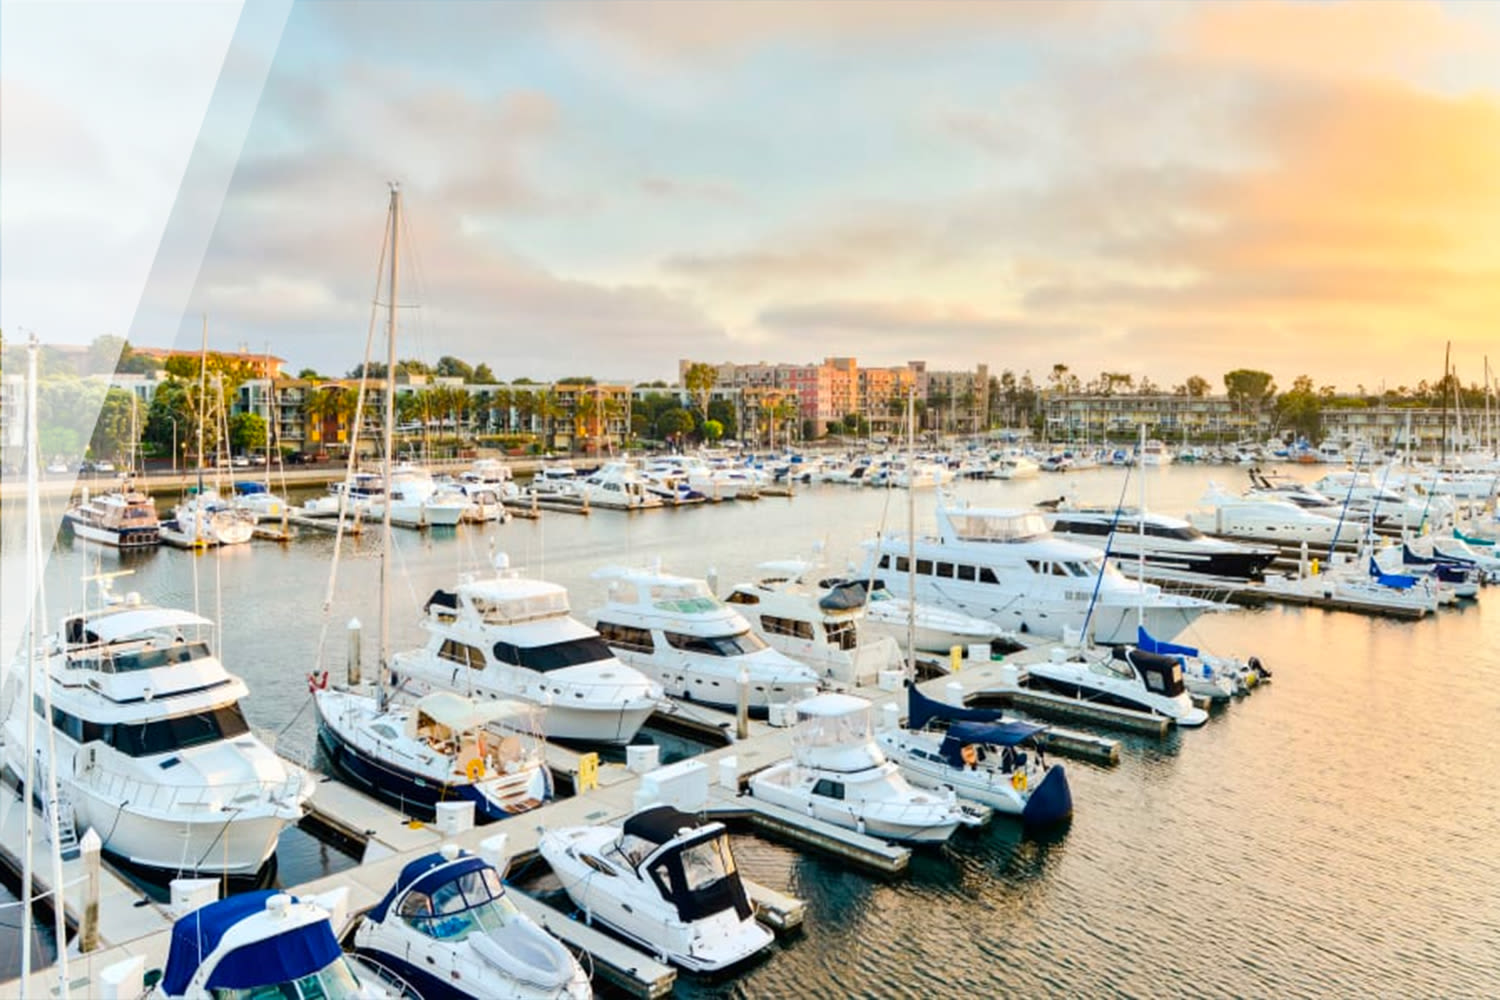 Sunset view of boats in slips at our Marina Harbor property at E&S Ring Management Corporation in Los Angeles, California